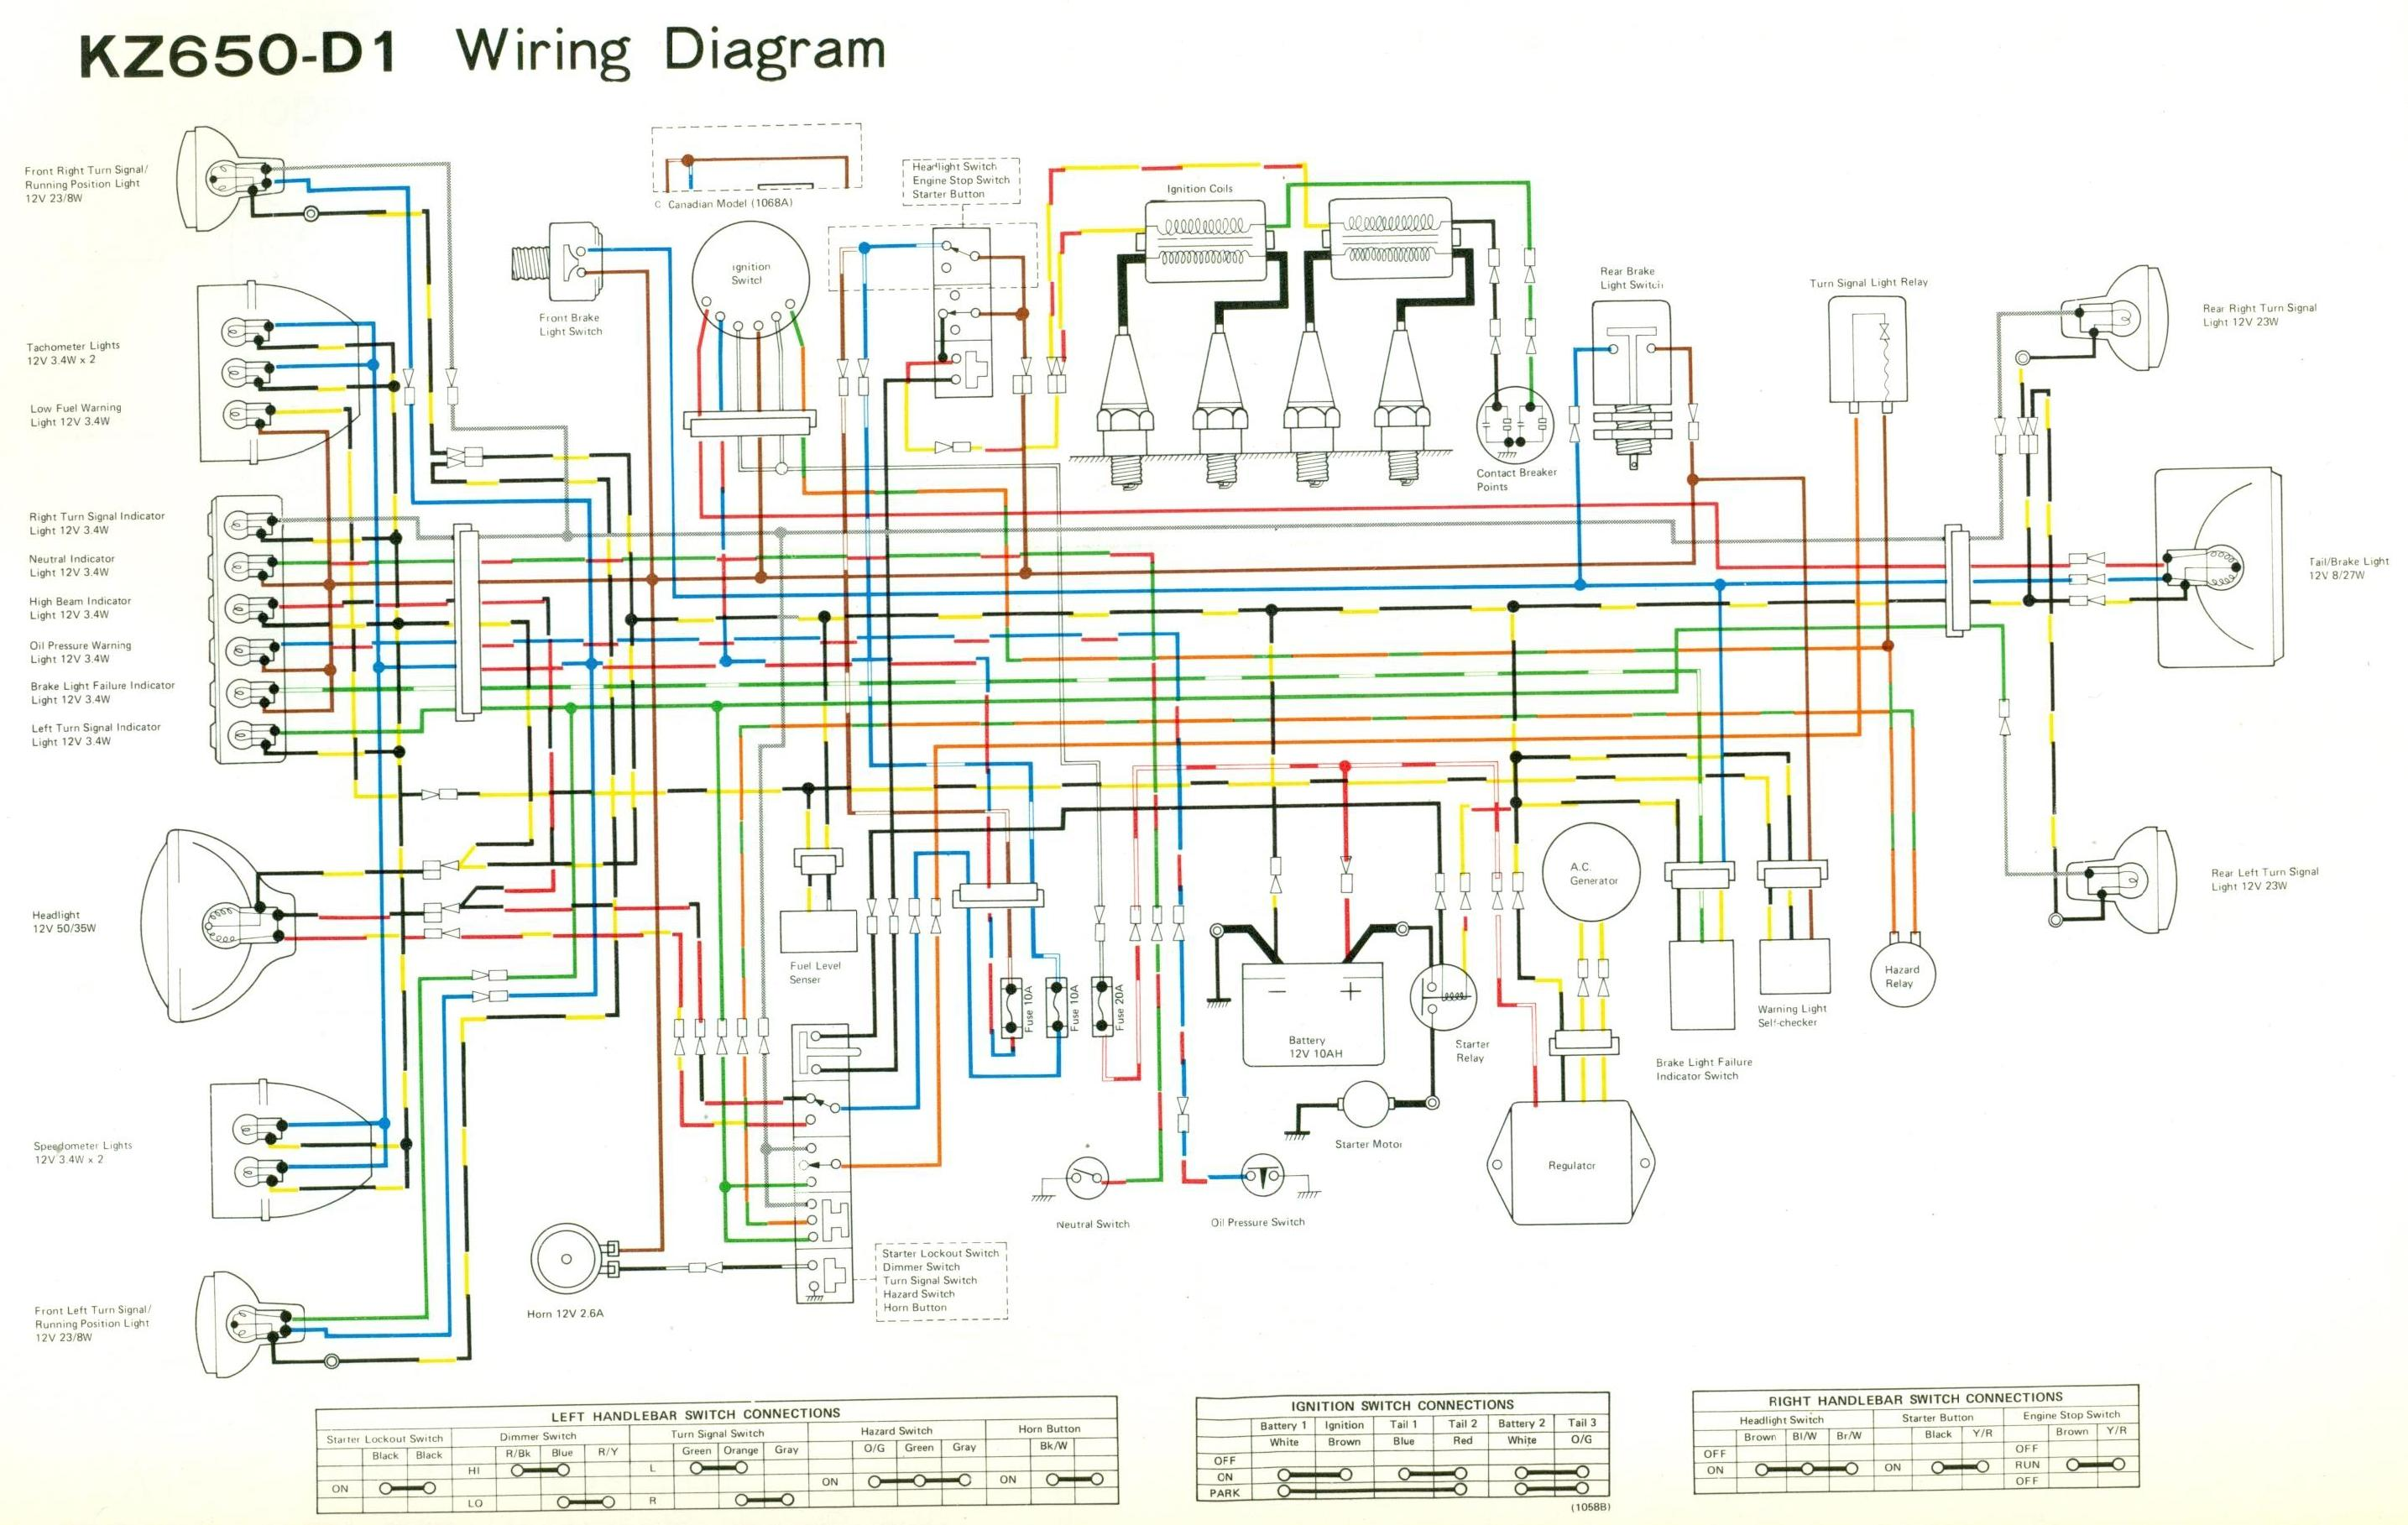 Wiring Diagrams Diagram For Honda Generator Kz650 D